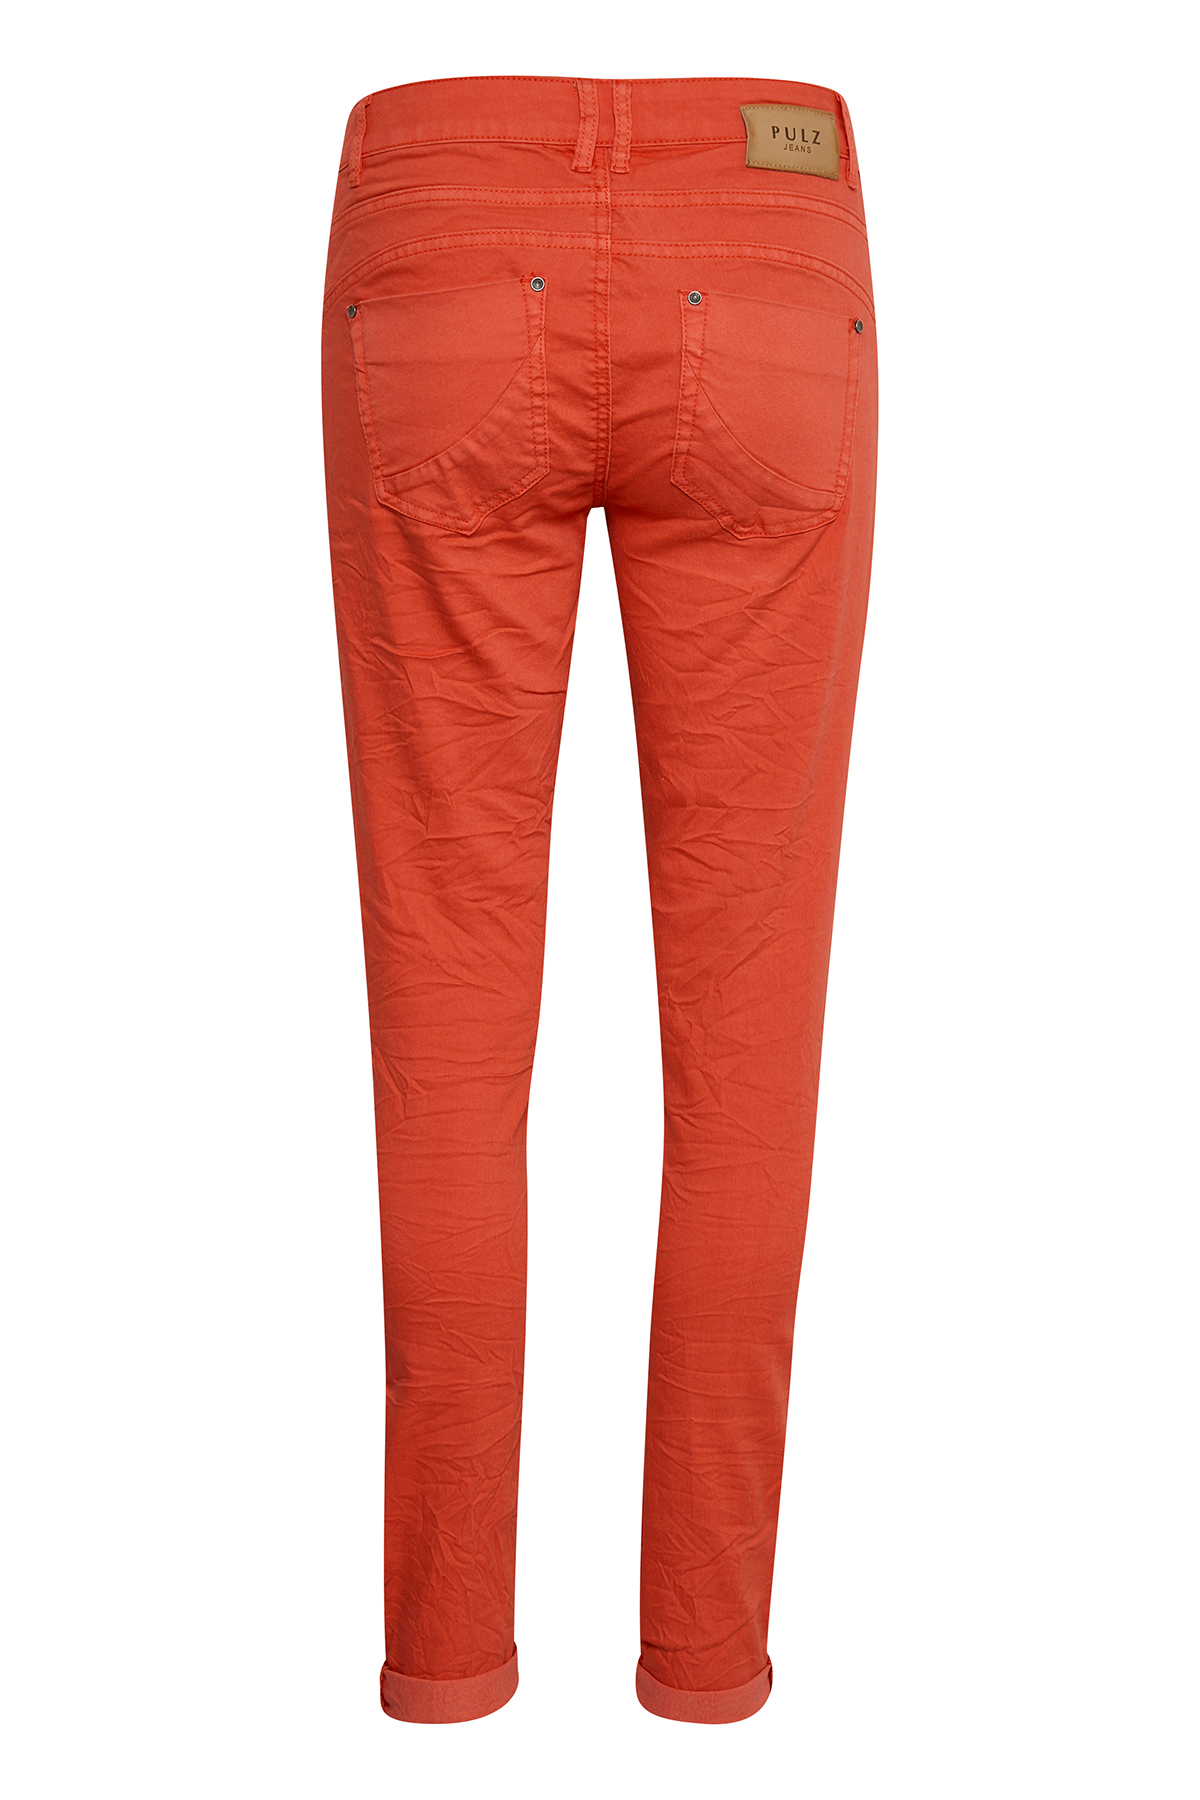 Blood Orange Casual buks – Køb Blood Orange Casual buks fra str. 36-44 her